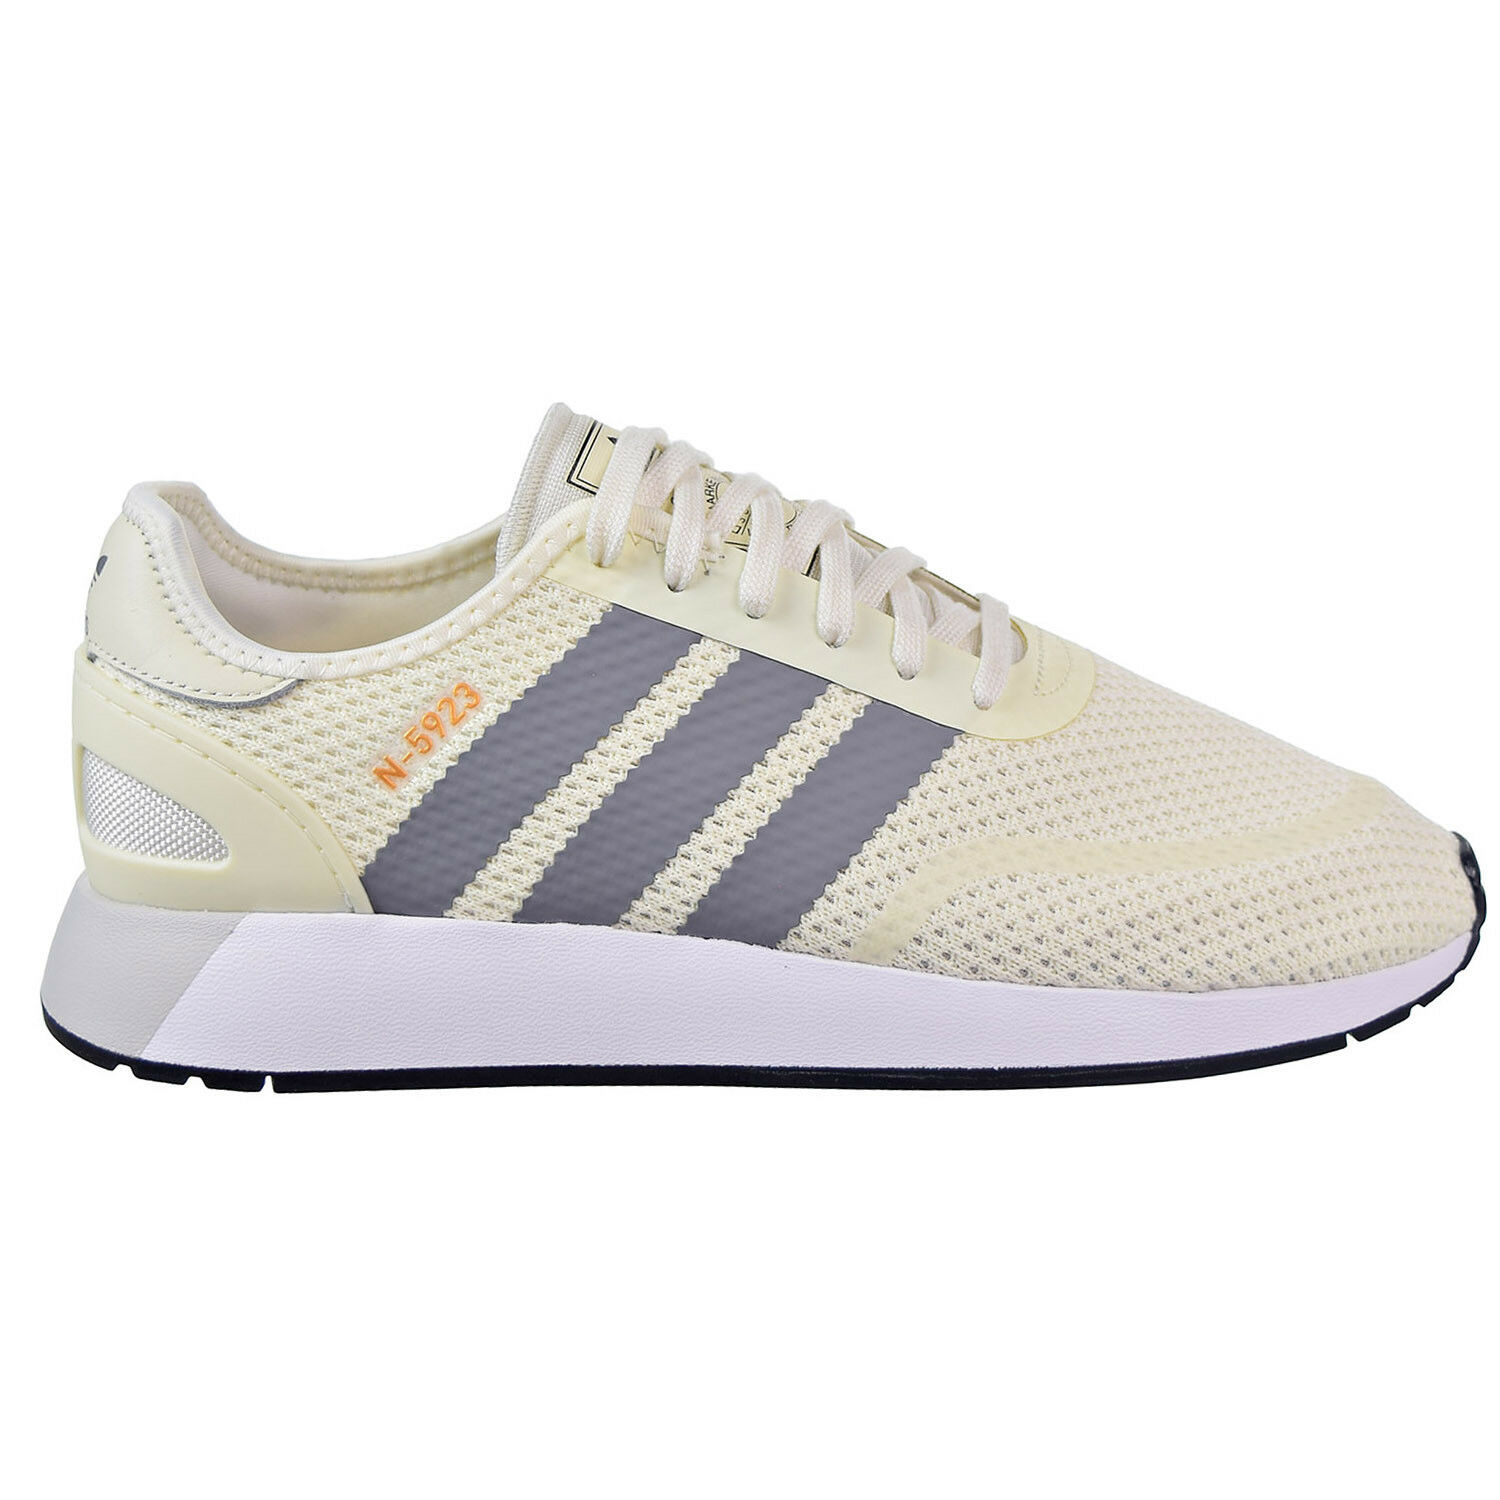 Adidas N-5923 Men's shoes Off White Grey Three Grey Three DB0958